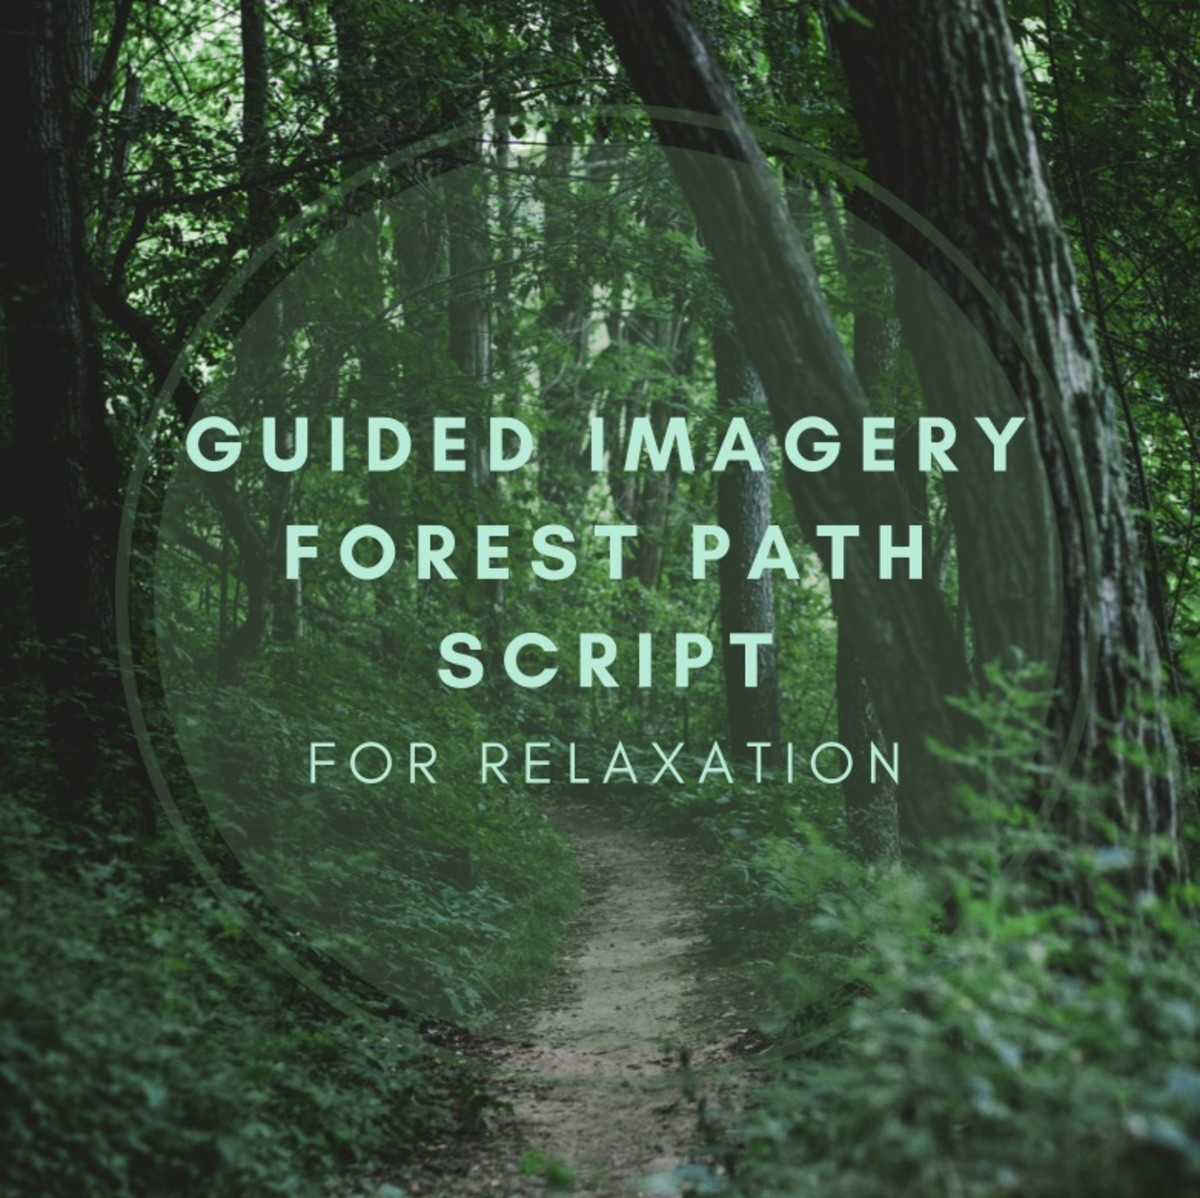 Guided imagery is an excellent technique for calming the mind.